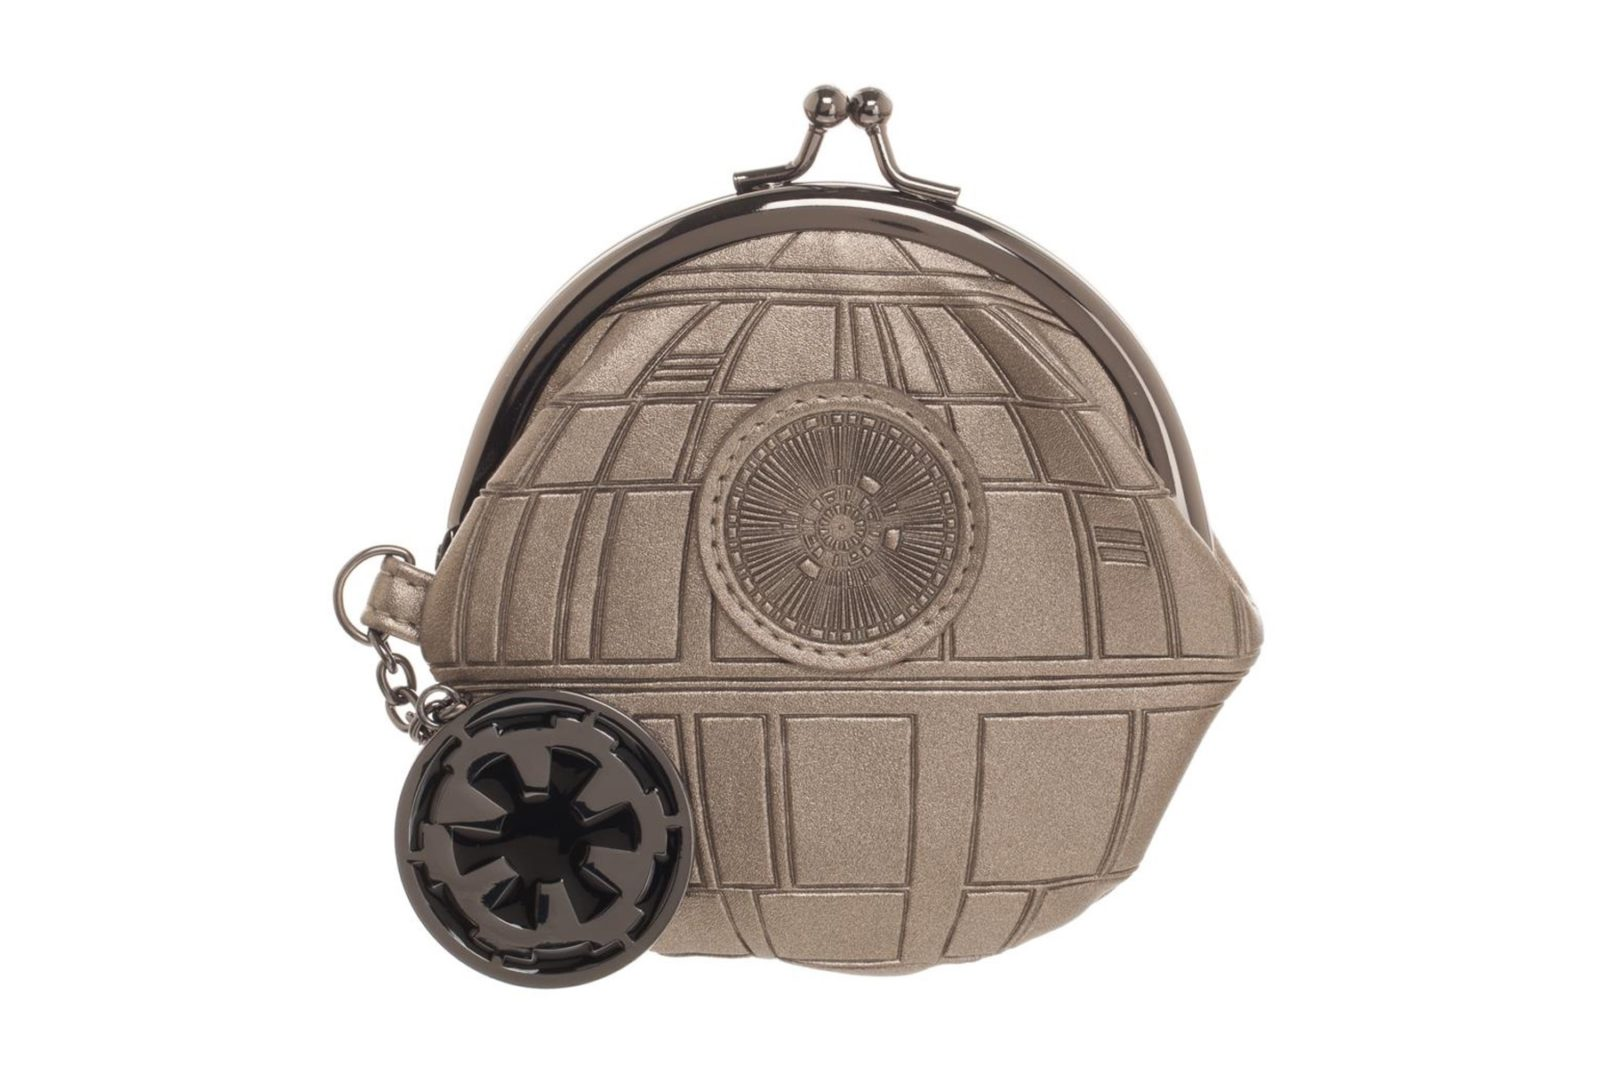 Star Wars Death Star Kisslock Coin Purse